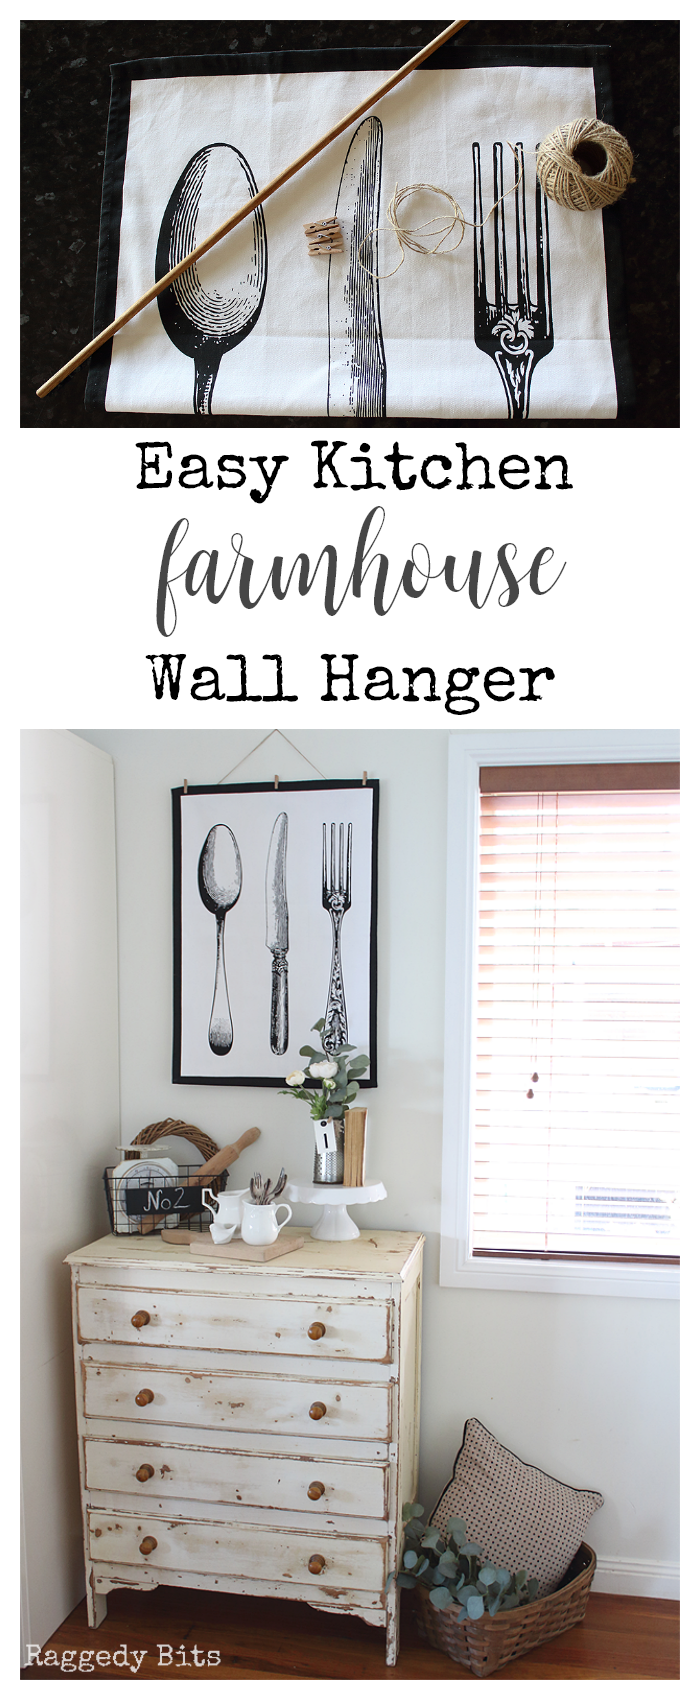 A fun Easy Kitchen Farmhouse Wall Hanger to make to had some farmhouse charm to your kitchen | www.raggedy-bits.com